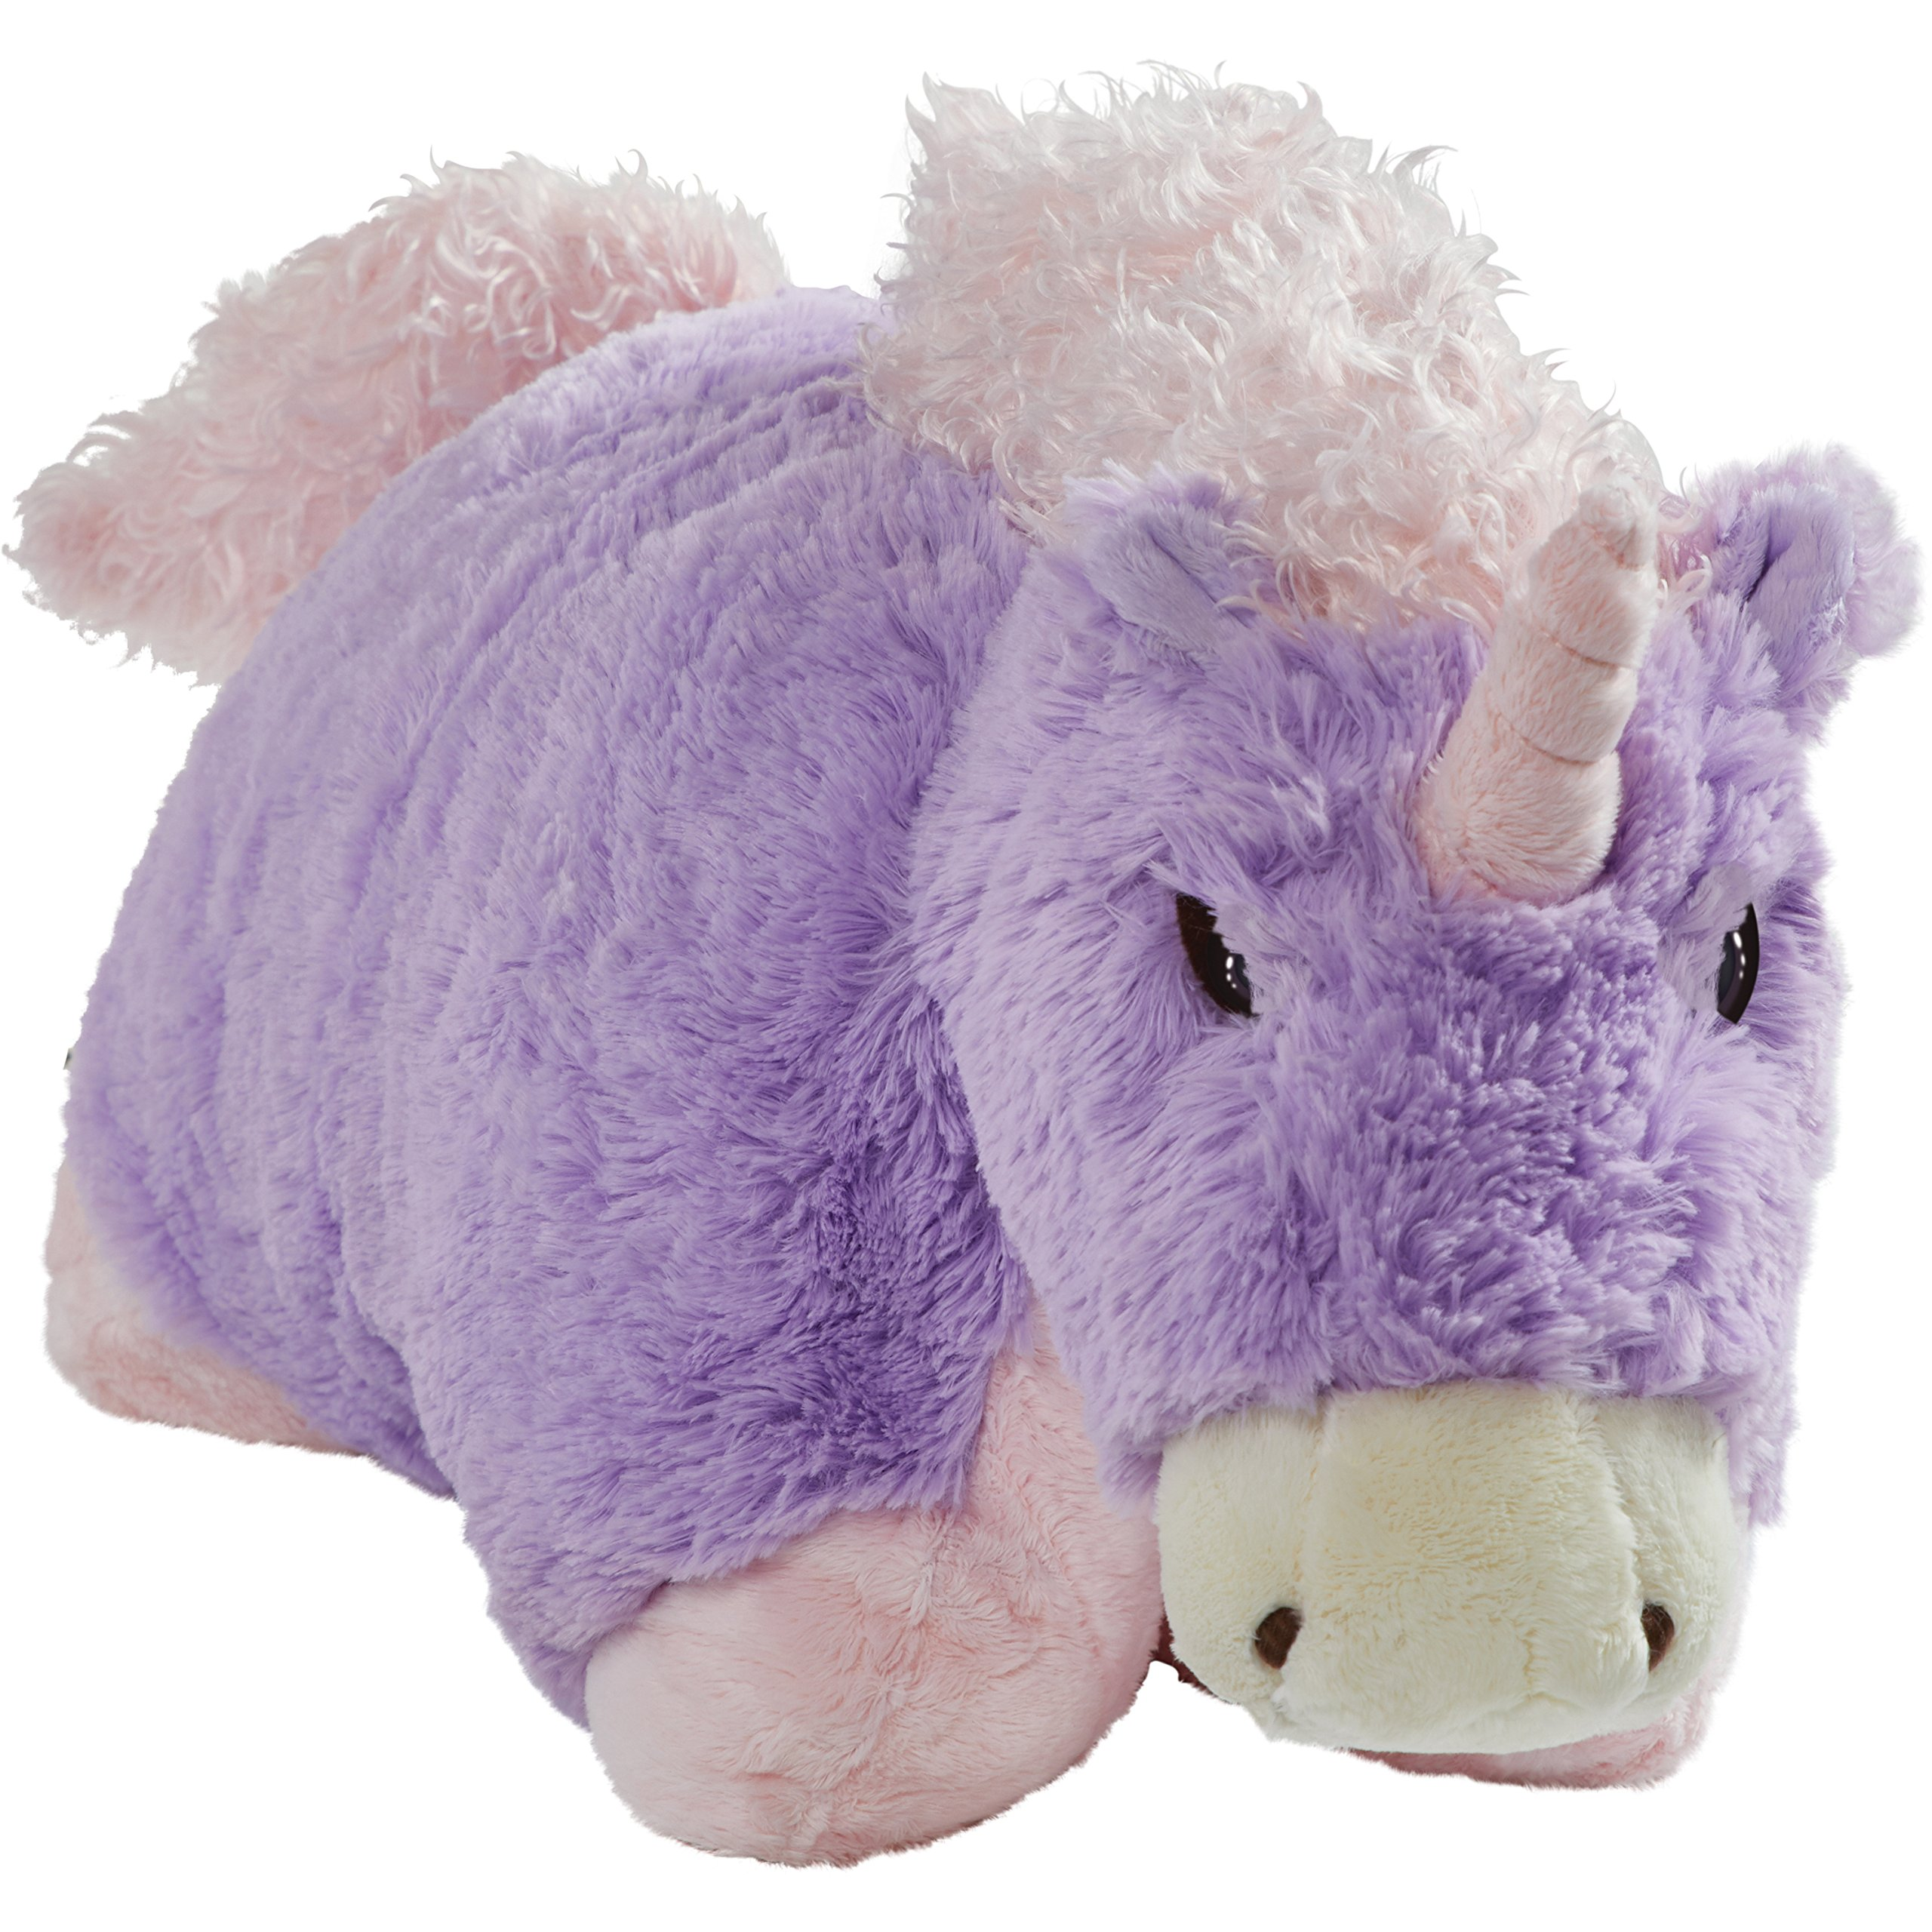 Pillow Pets Signature Stuffed Animal Plush Toy 18'', Lavender Unicorn by Pillow Pets